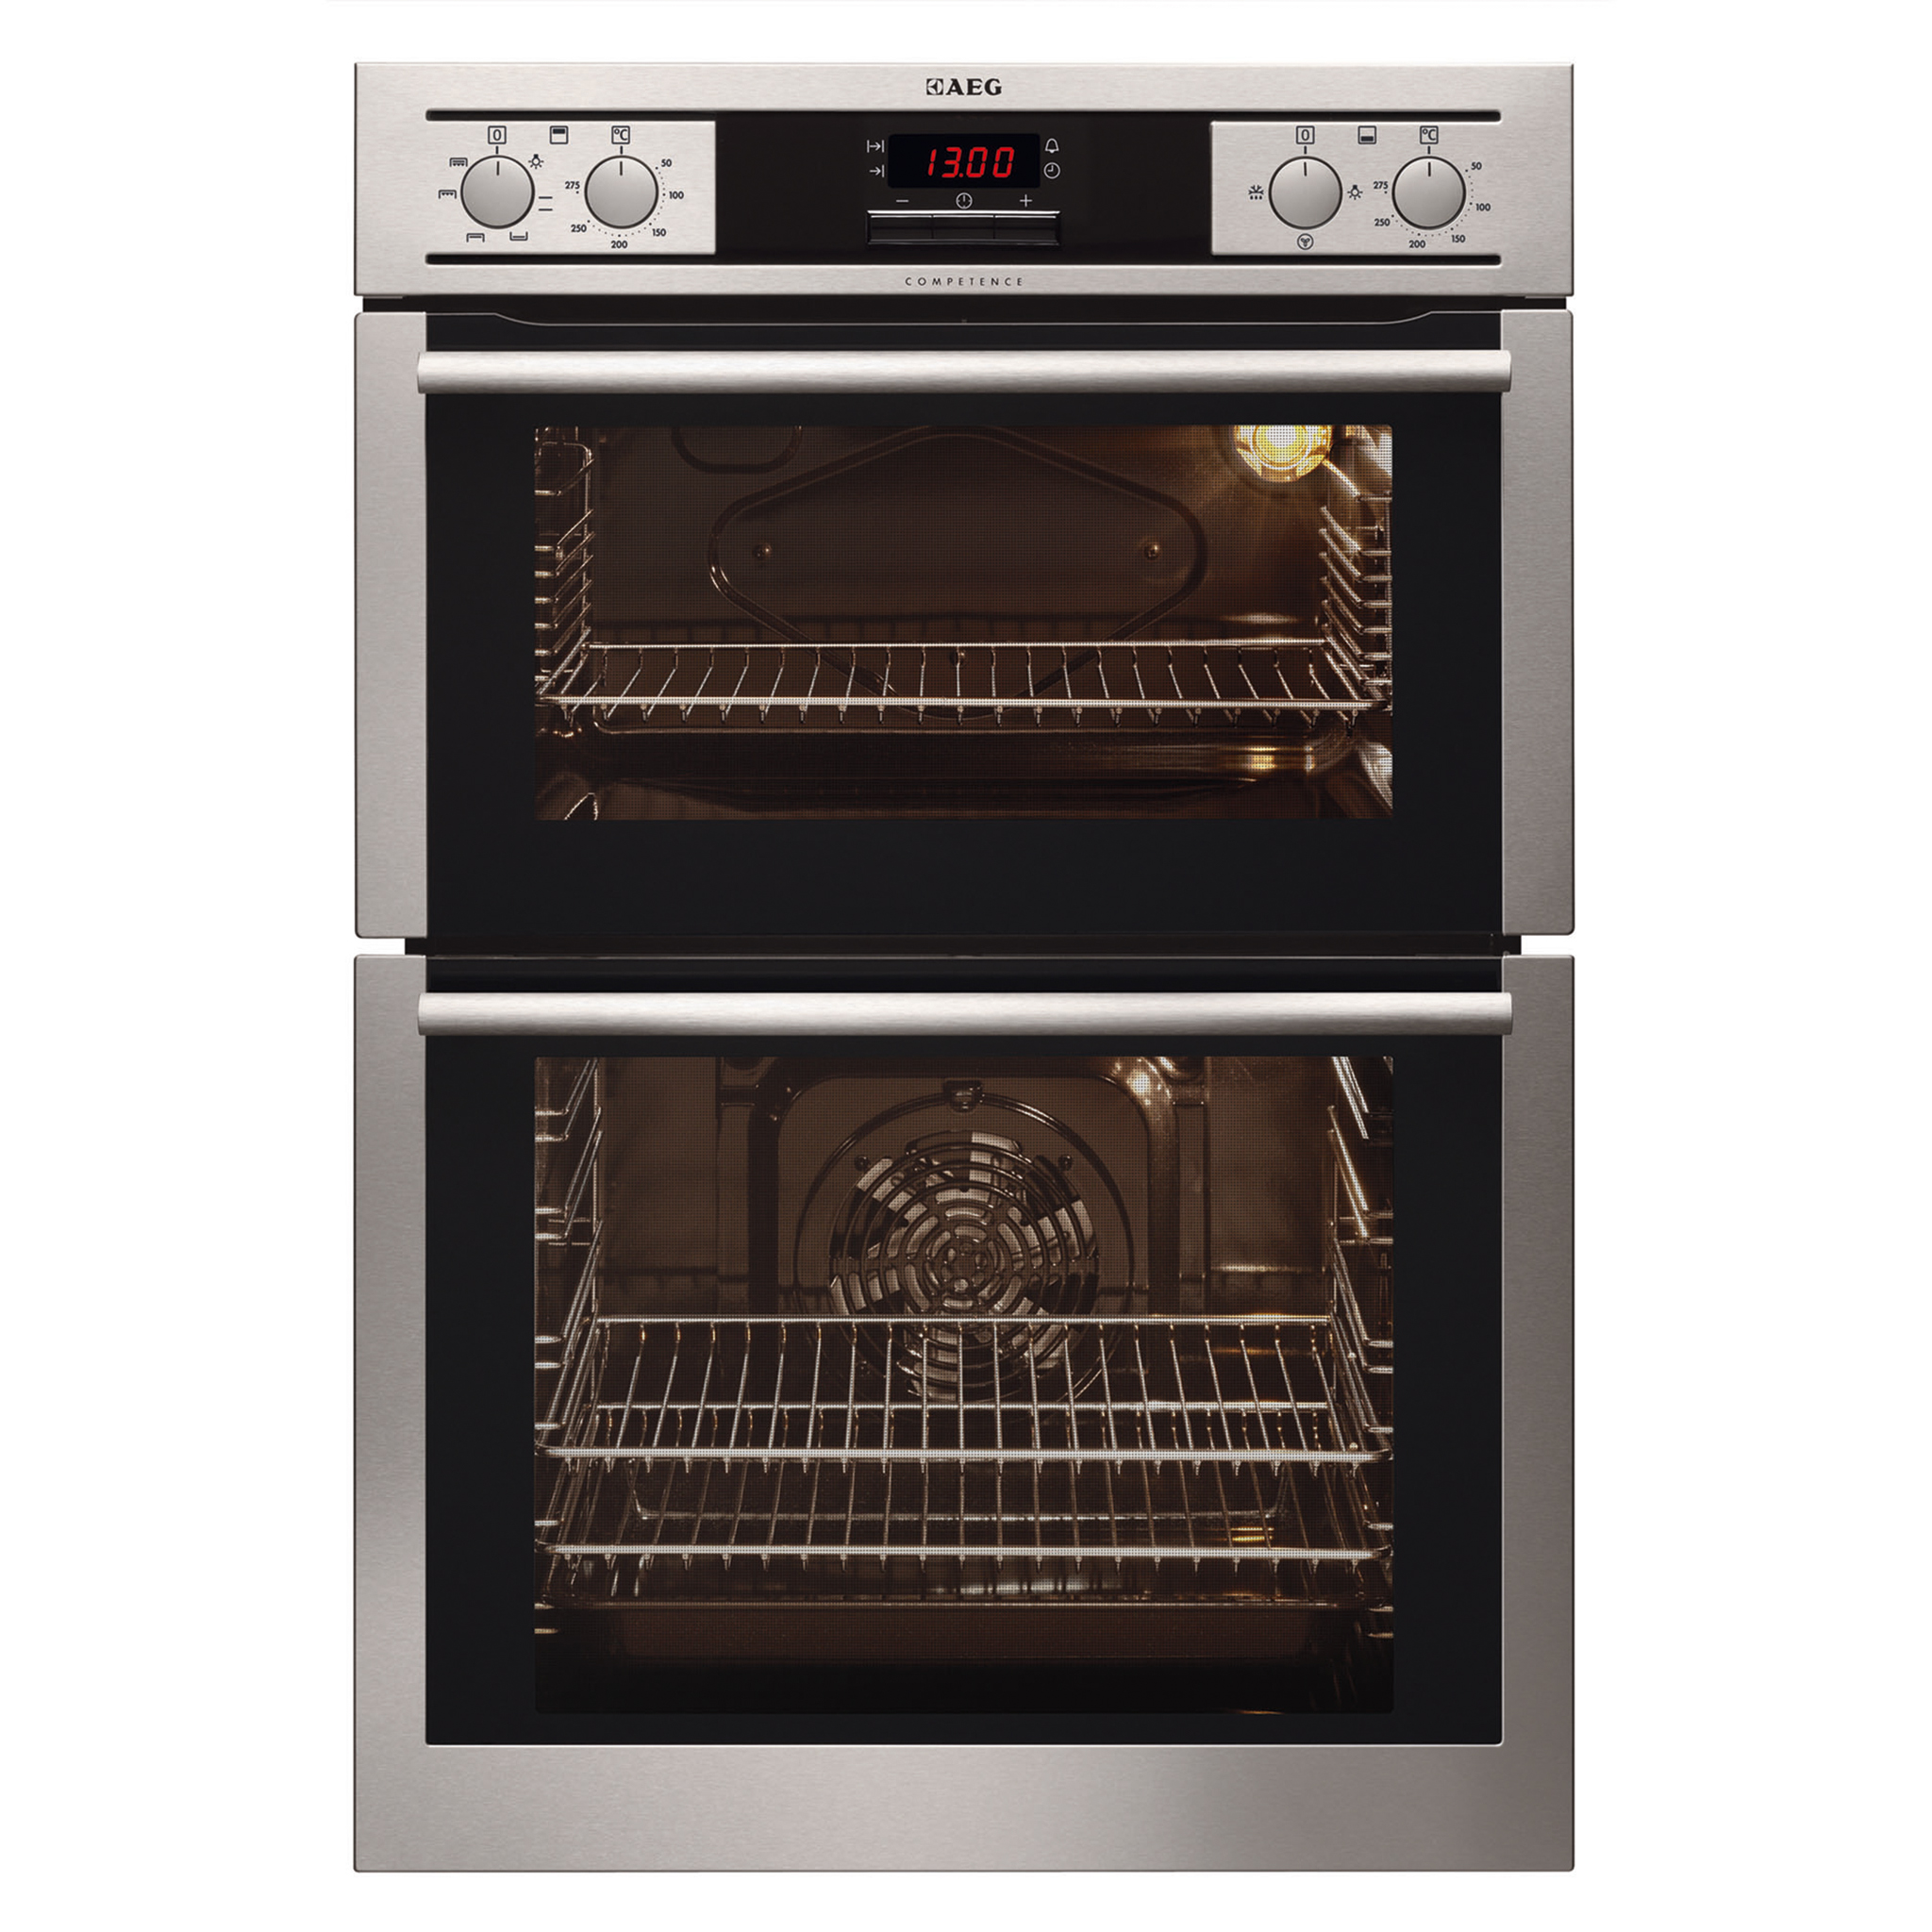 Uncategorized Trade In Kitchen Appliances double ovens cookers hobs kitchen appliances magnet trade aeg de4013001m built in oven